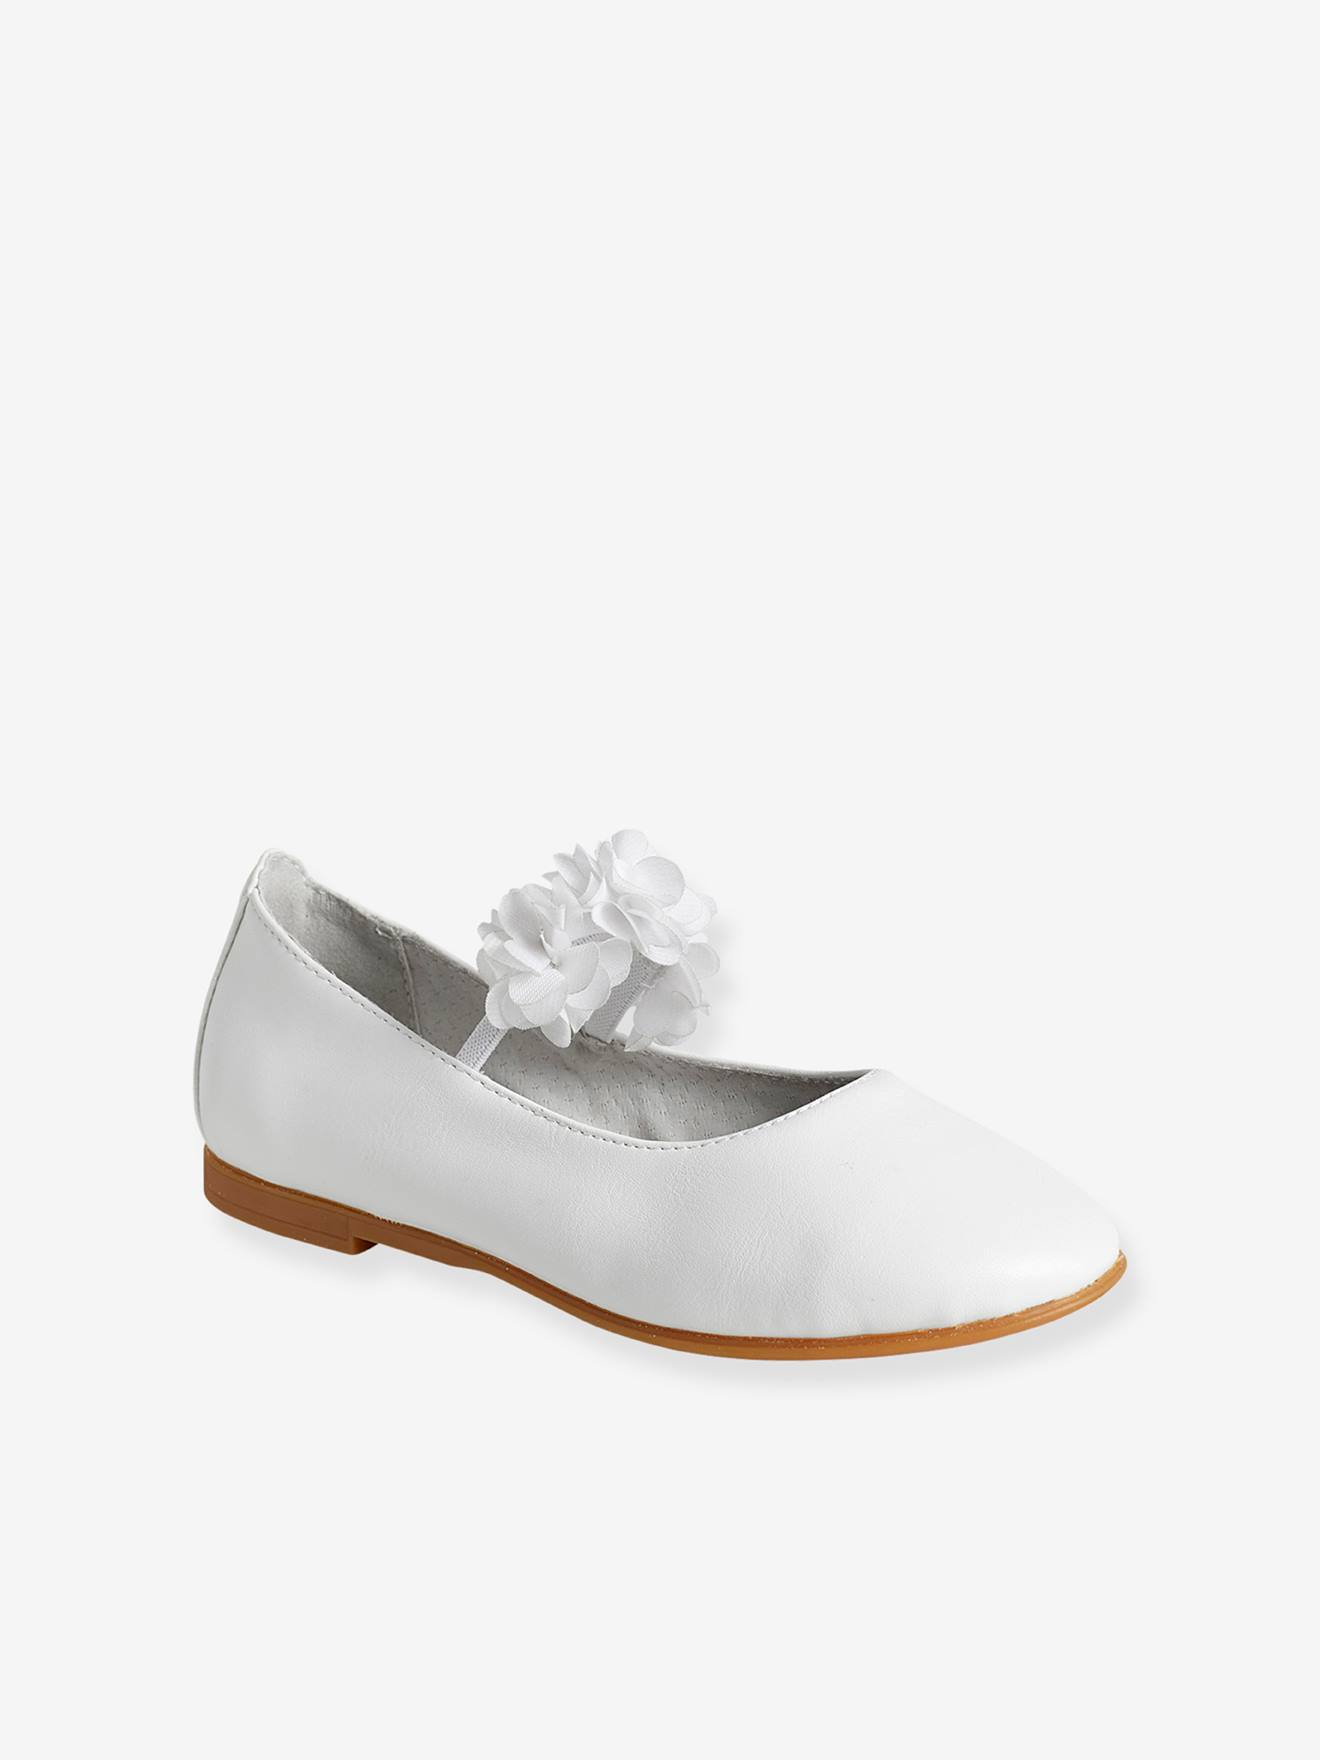 Girls ballerina shoes flowers and tulle white medium metallized girls ballerina shoes flowers and tulle white medium metallized shoes mightylinksfo